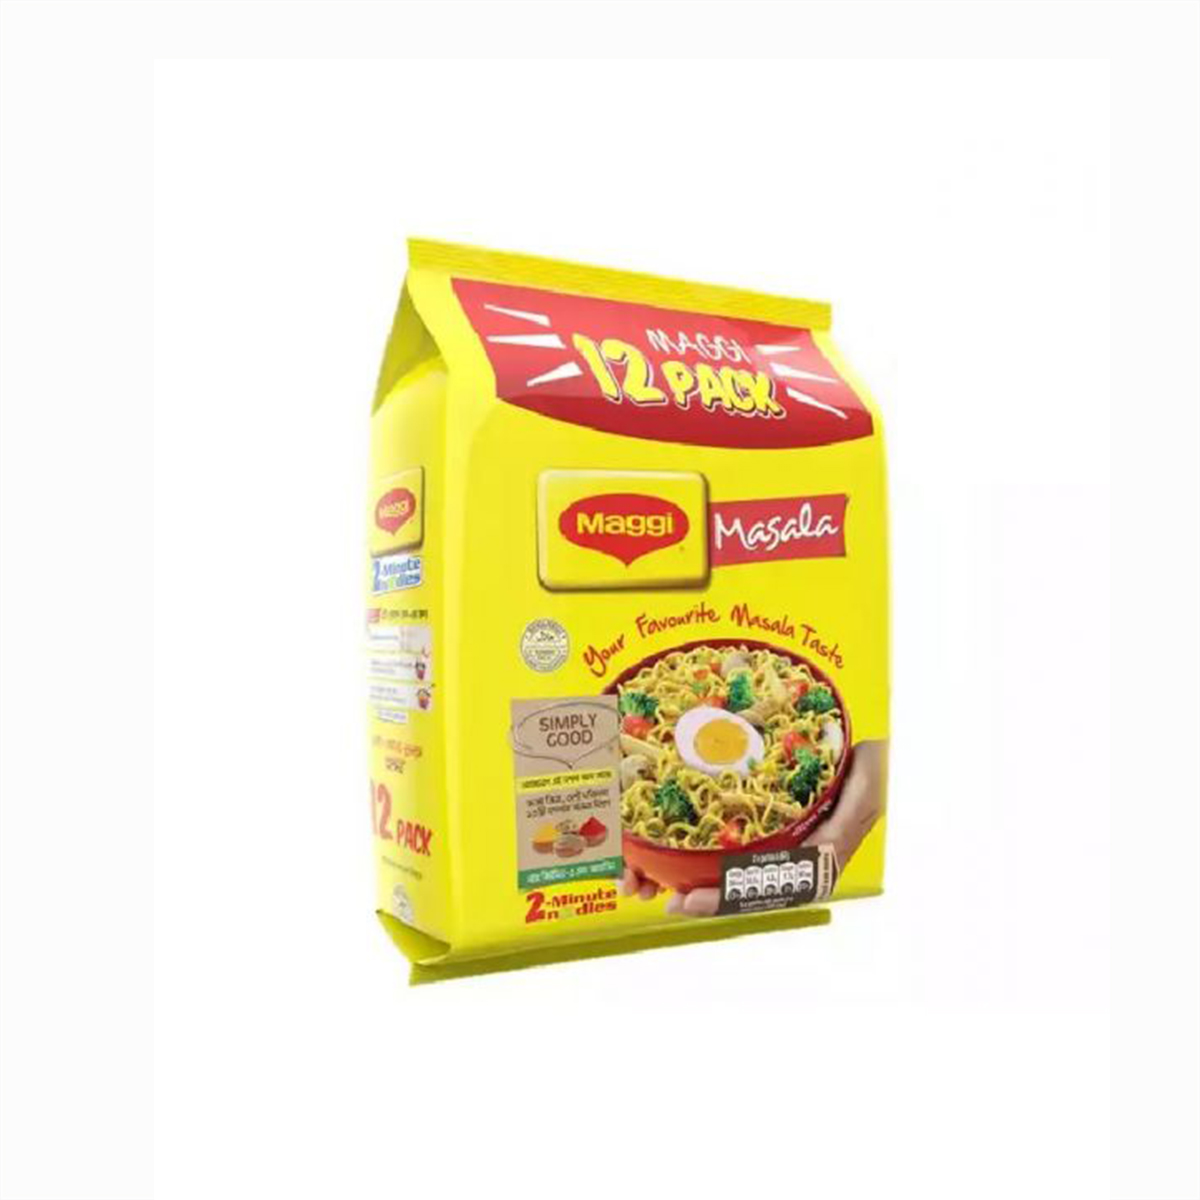 Maggi 2-Minute Noodles Masala (Pack of 12 Pieces)